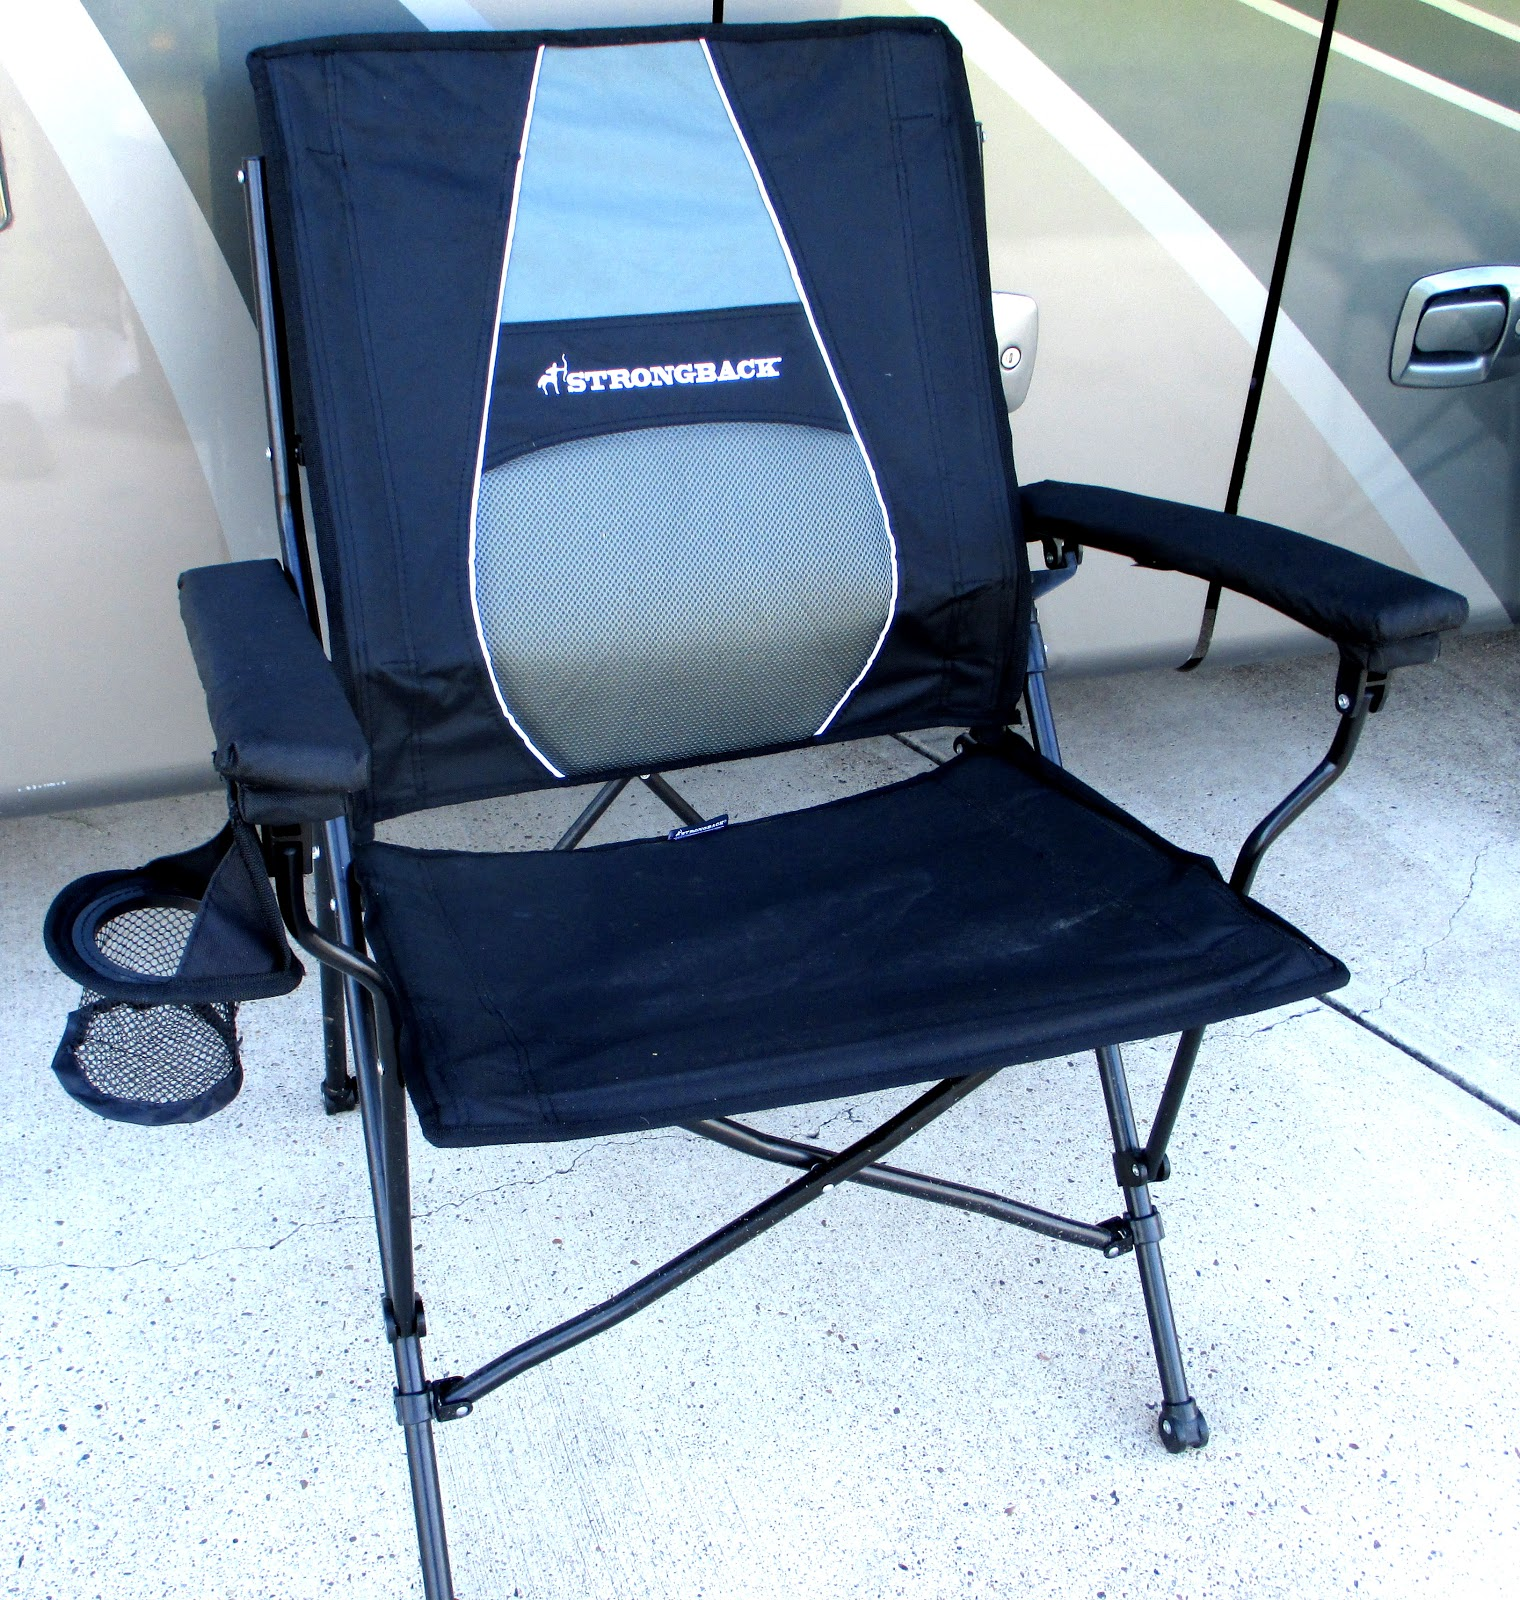 Strong Back Chairs Dining Chair Covers Australia Ebay Phannie And Mae Settling Down In The Rgv Plus A Good Deal On Not Wanting To Be Without One Of These We Had Four Them Before This Incident I Sent Quick Email Strongback Order Replacement